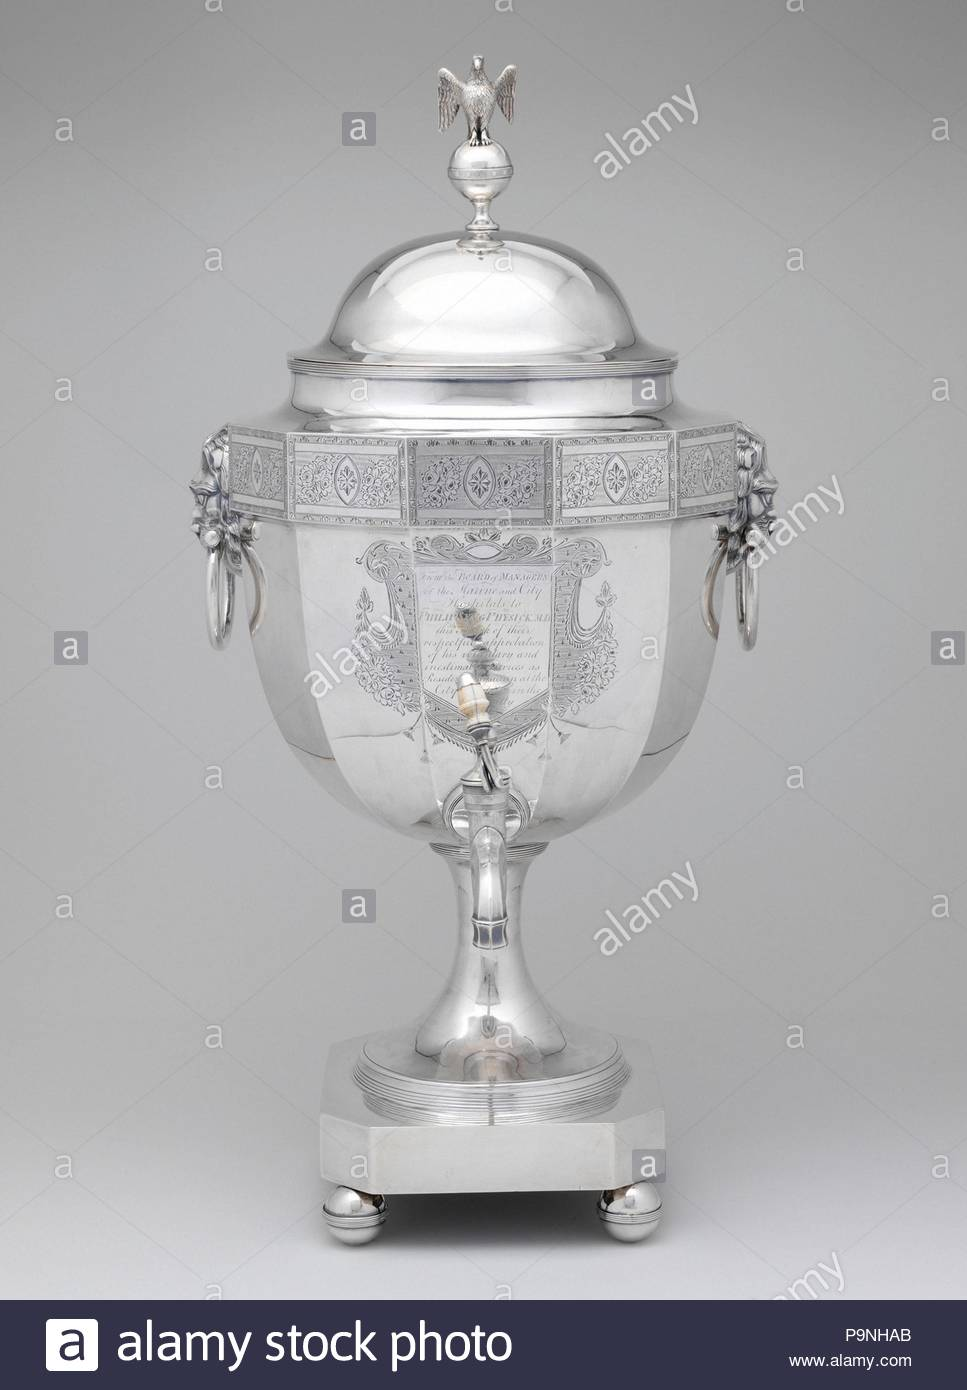 Tea or hot water urn, 1799, Made in Philadelphia, Pennsylvania, United States, American, silver with ivory handle, 21 3/4 x 11 1/8 x 13 1/8 in., 166 Troy Ounces (55.2 x 28.3 x 33.3 cm, 5171 Grams), Silver, John McMullin (1765–1843), The yellow fever epidemics of 1793 and 1798 devastated the city of Philadelphia, killing thousands and forcing many to flee what was then the nation's capital and largest city. Among those who remained behind to tend the stricken was Dr. - Stock Image